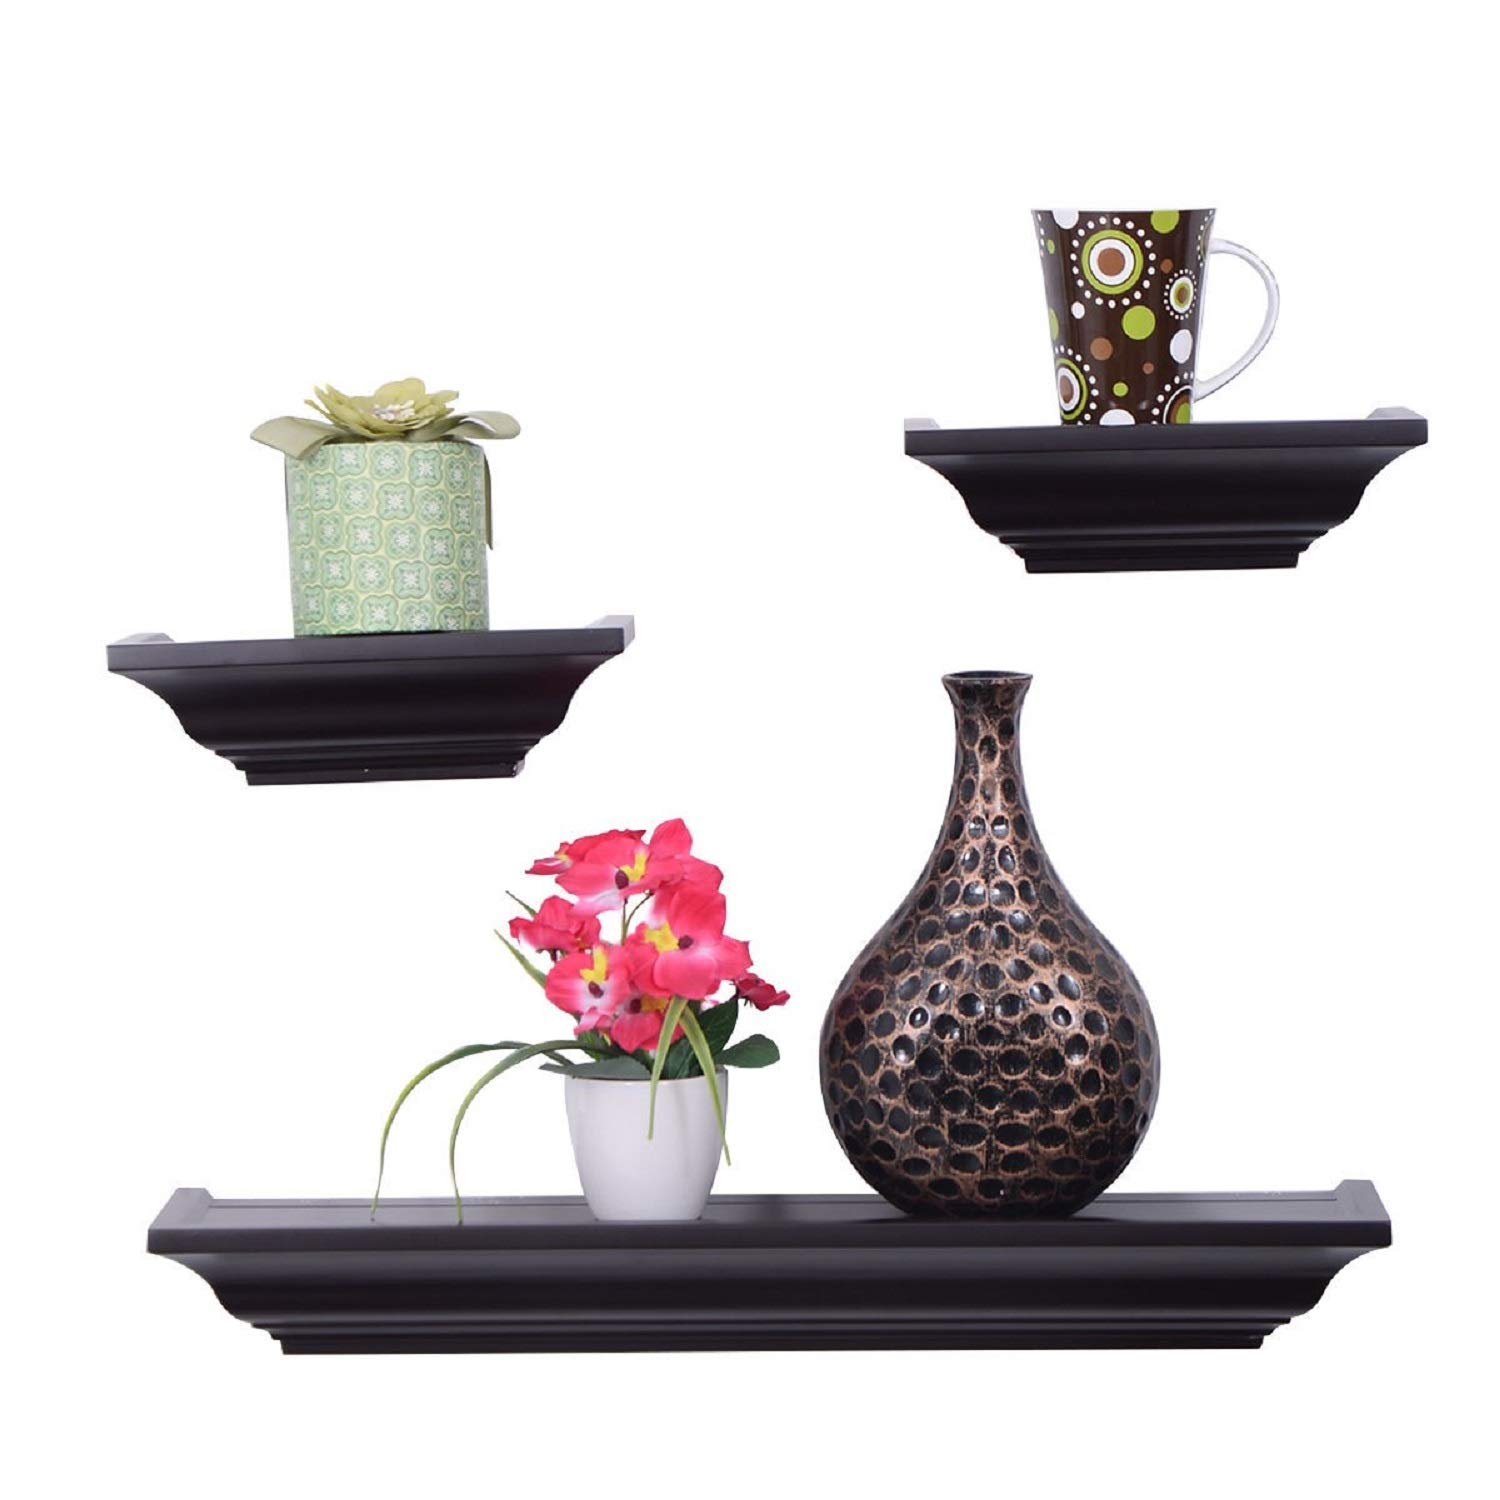 COSTWAY A Set of 3 Fireplace Mantel Shelf by SpiritOne by COSTWAY